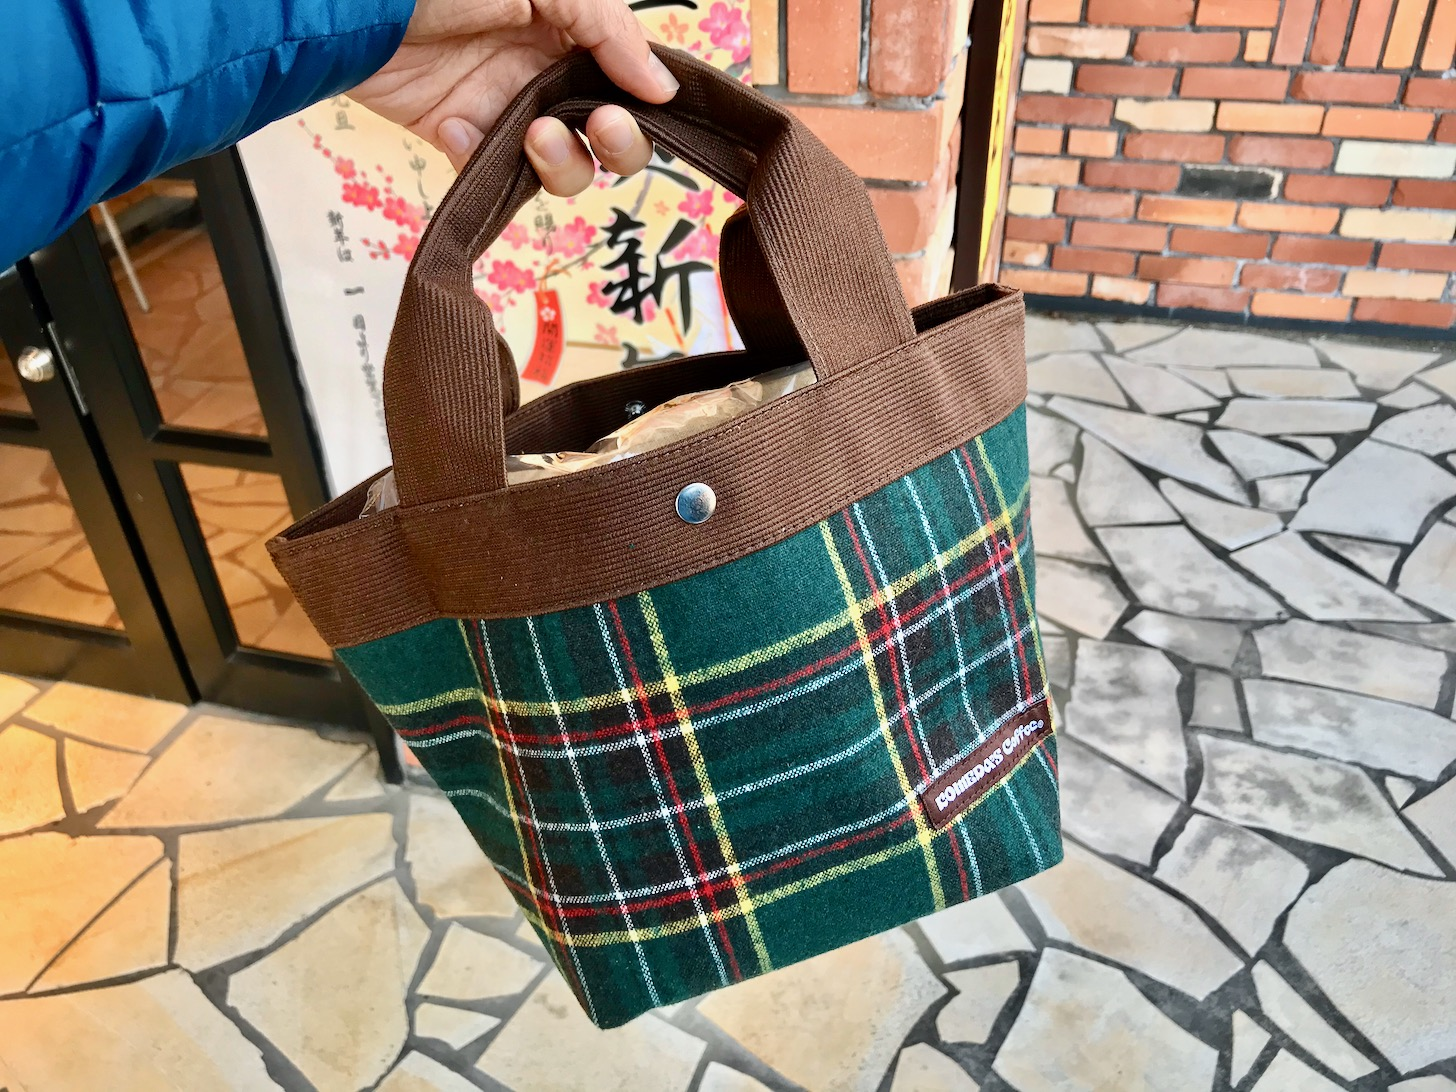 Comedy lottery bag with rice lottery 2020 5000 yen lucky bag